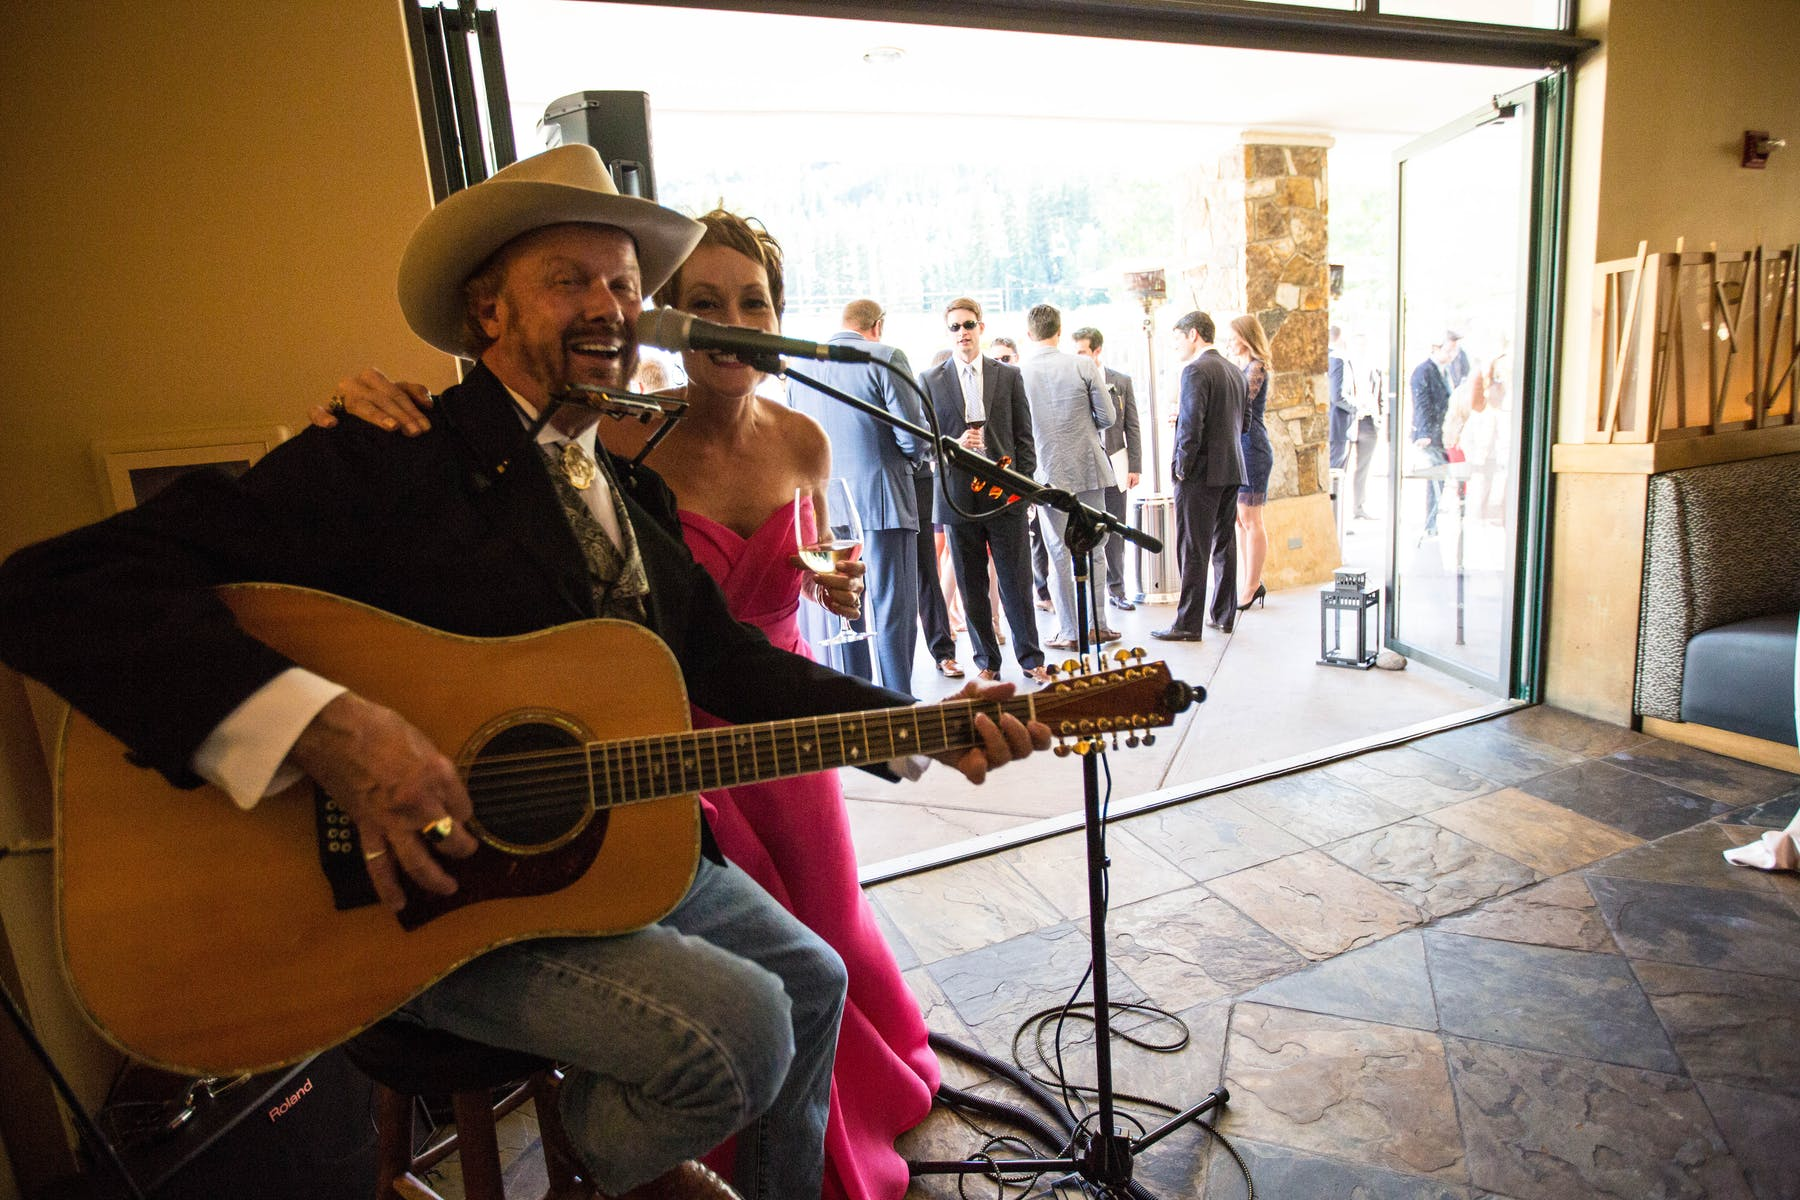 Larkspur Wedding Venue Vail Colorado Mountain Patio Outdoors Musicians